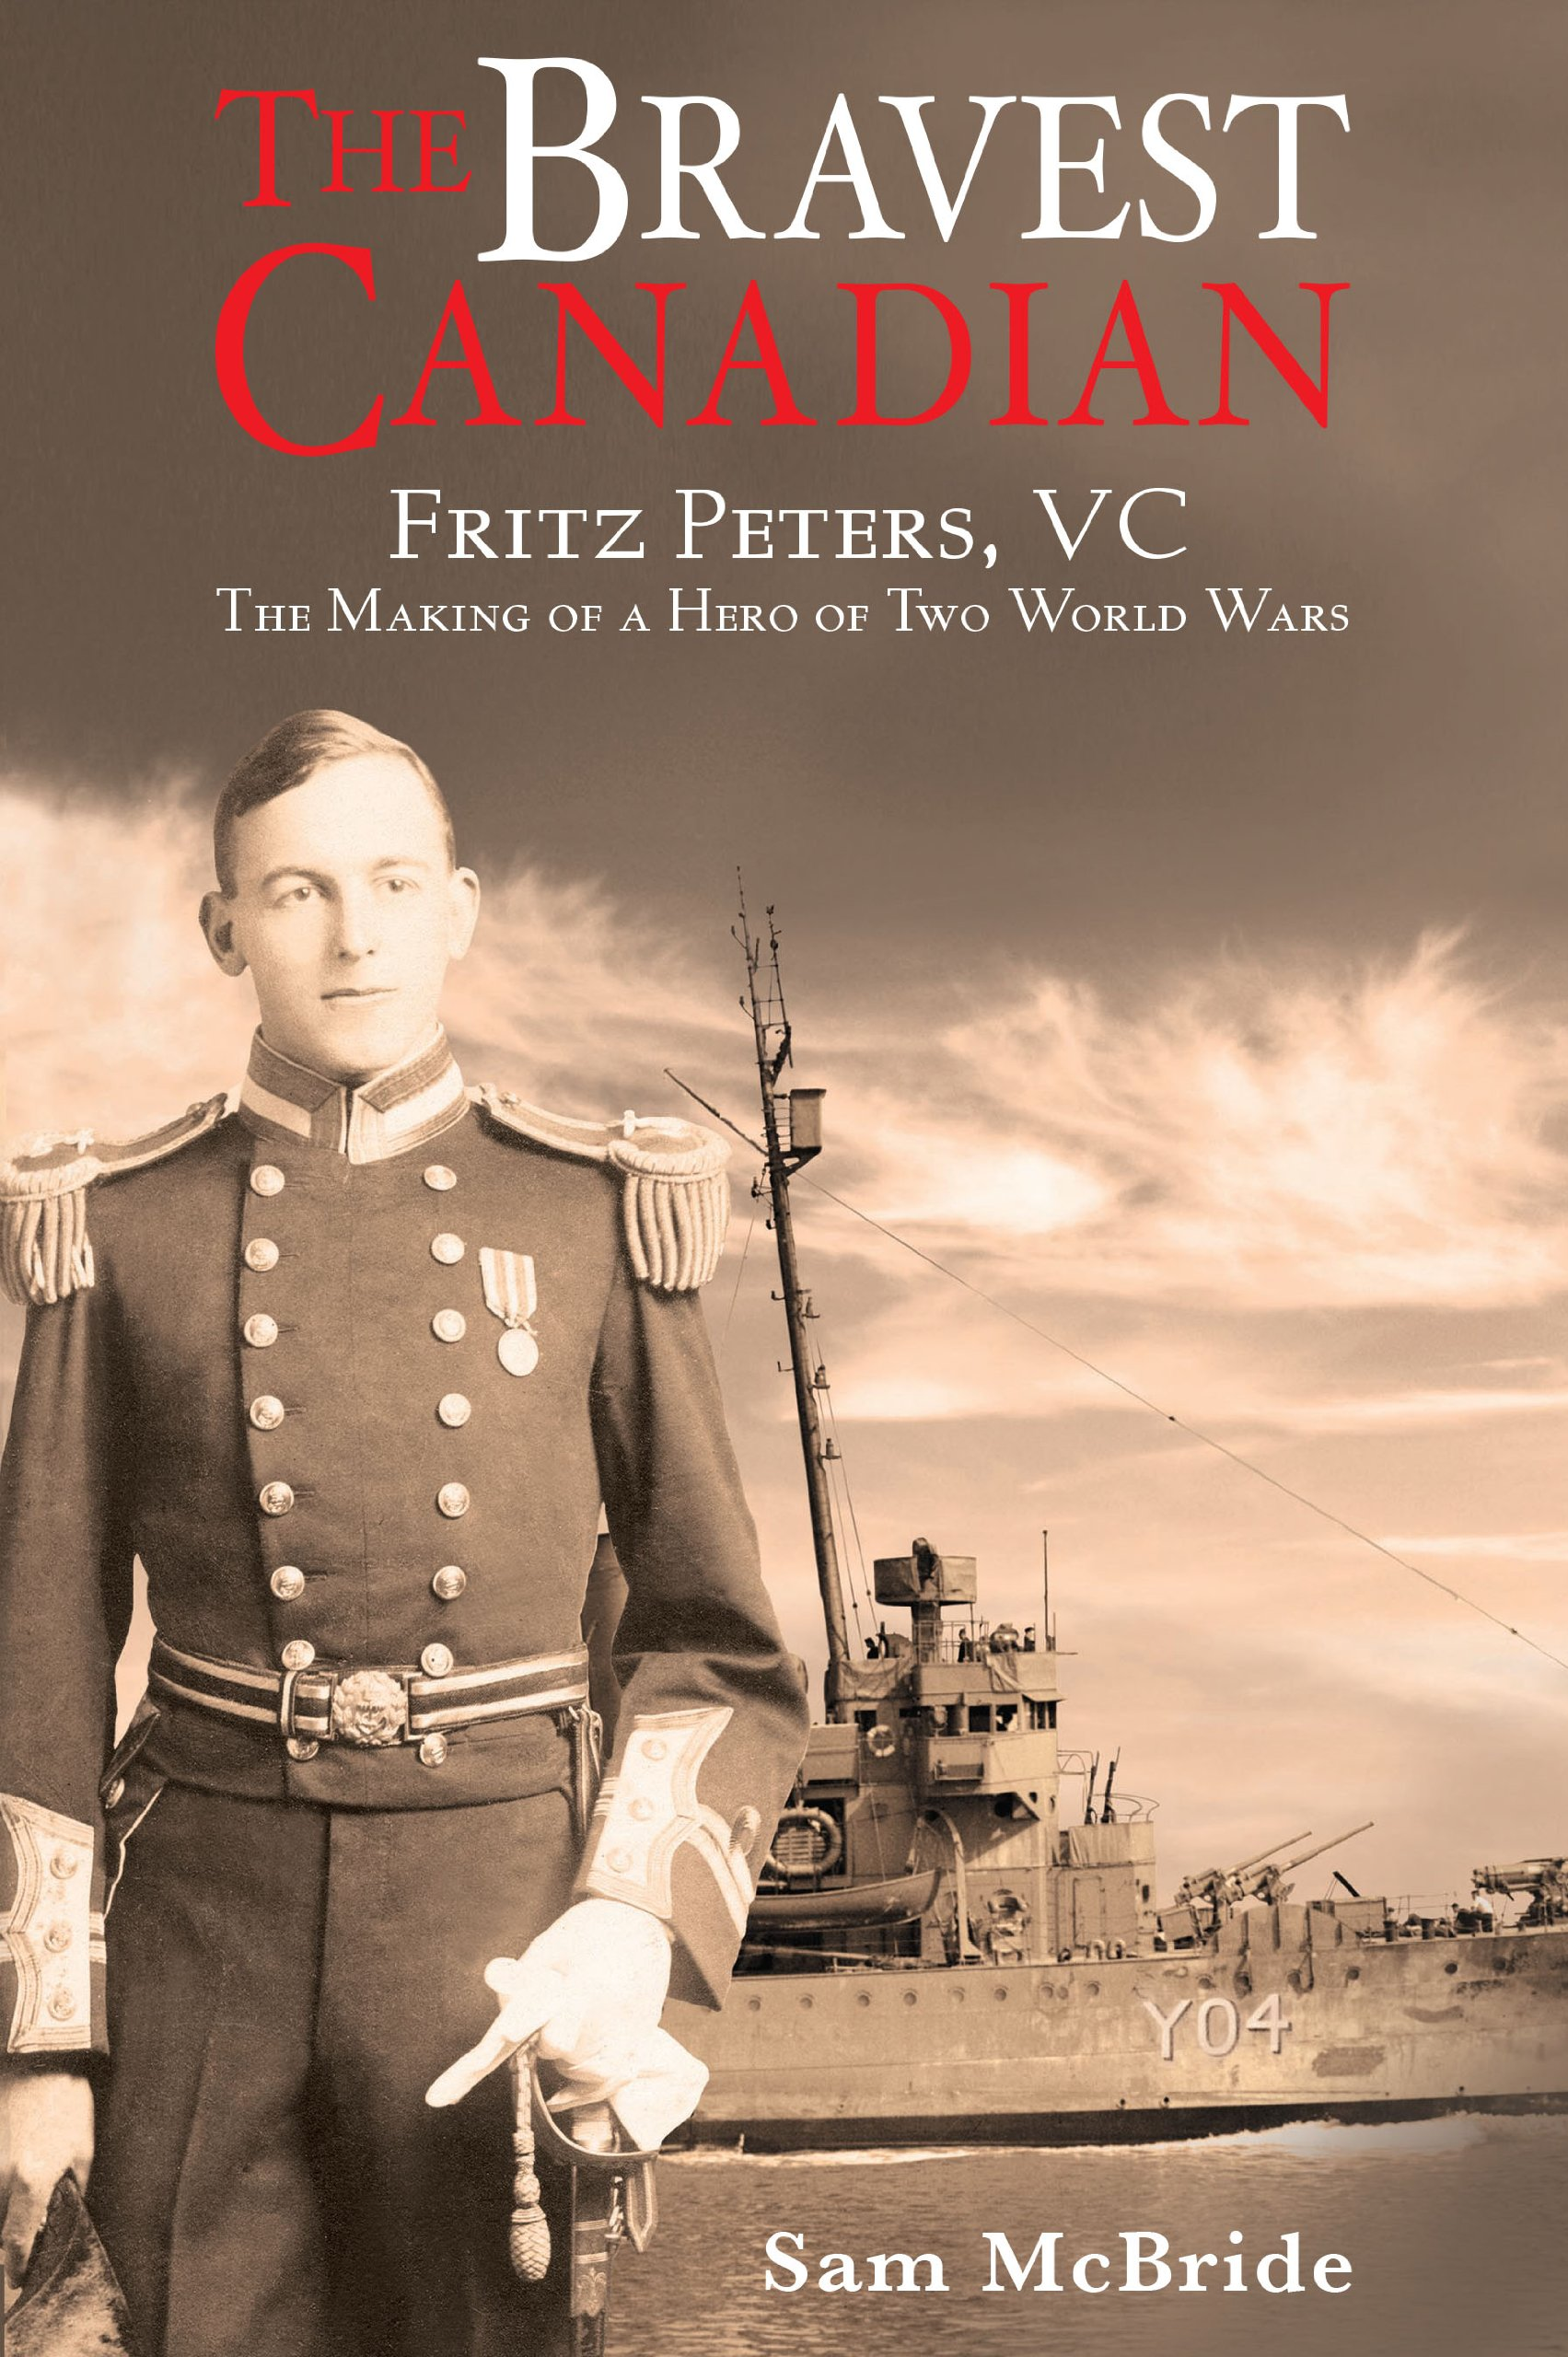 The Bravest Canadian: Peters, VC The Making of a Hero of Two World Wars